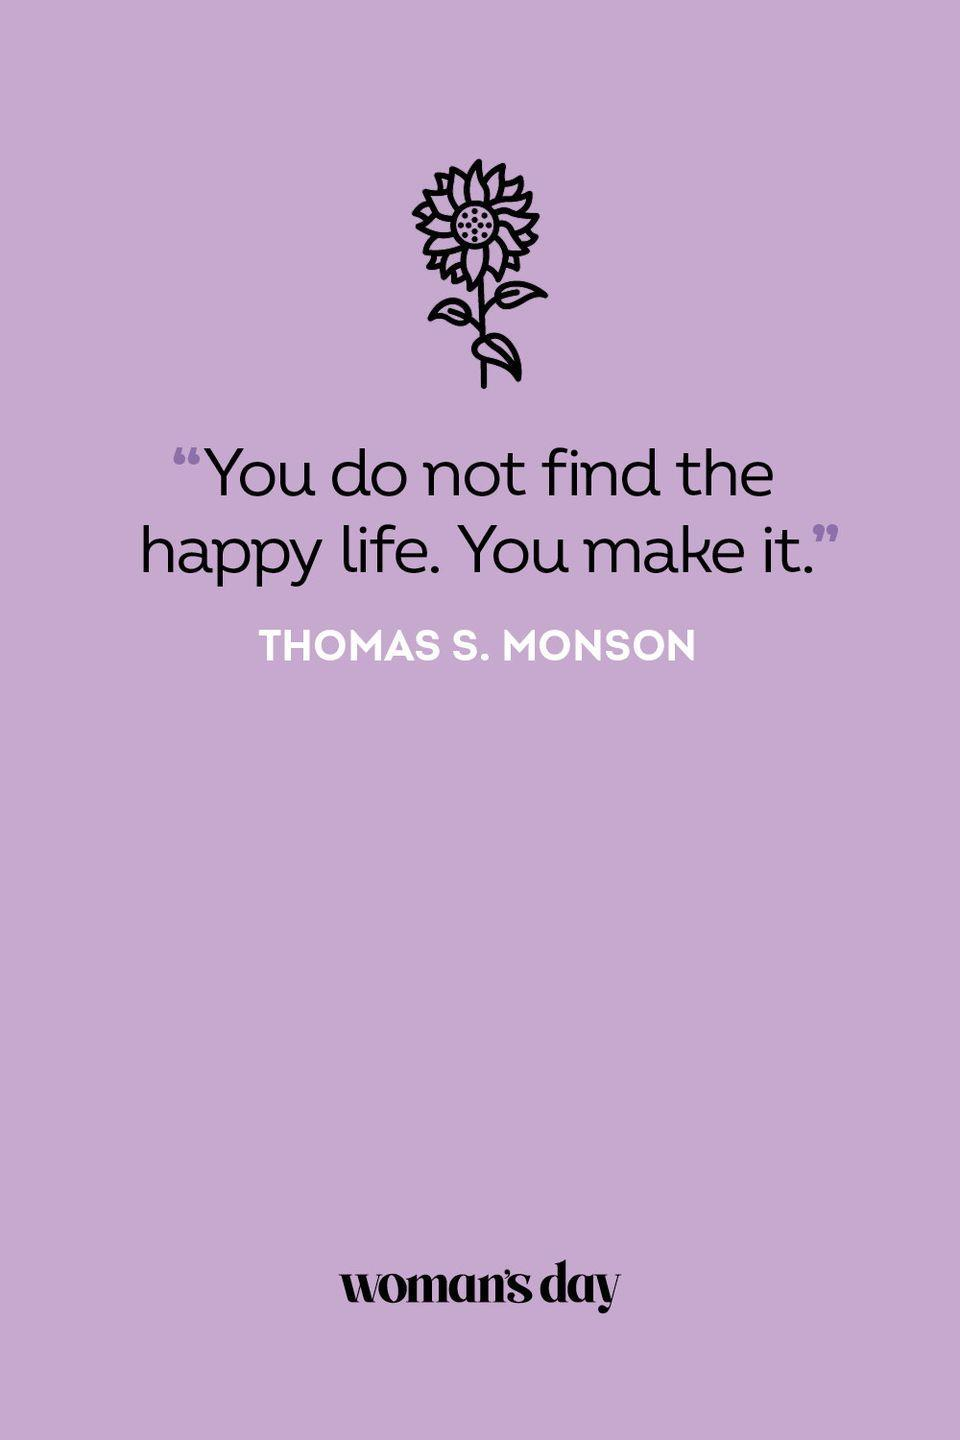 <p>You do not find the happy life. You make it.</p>